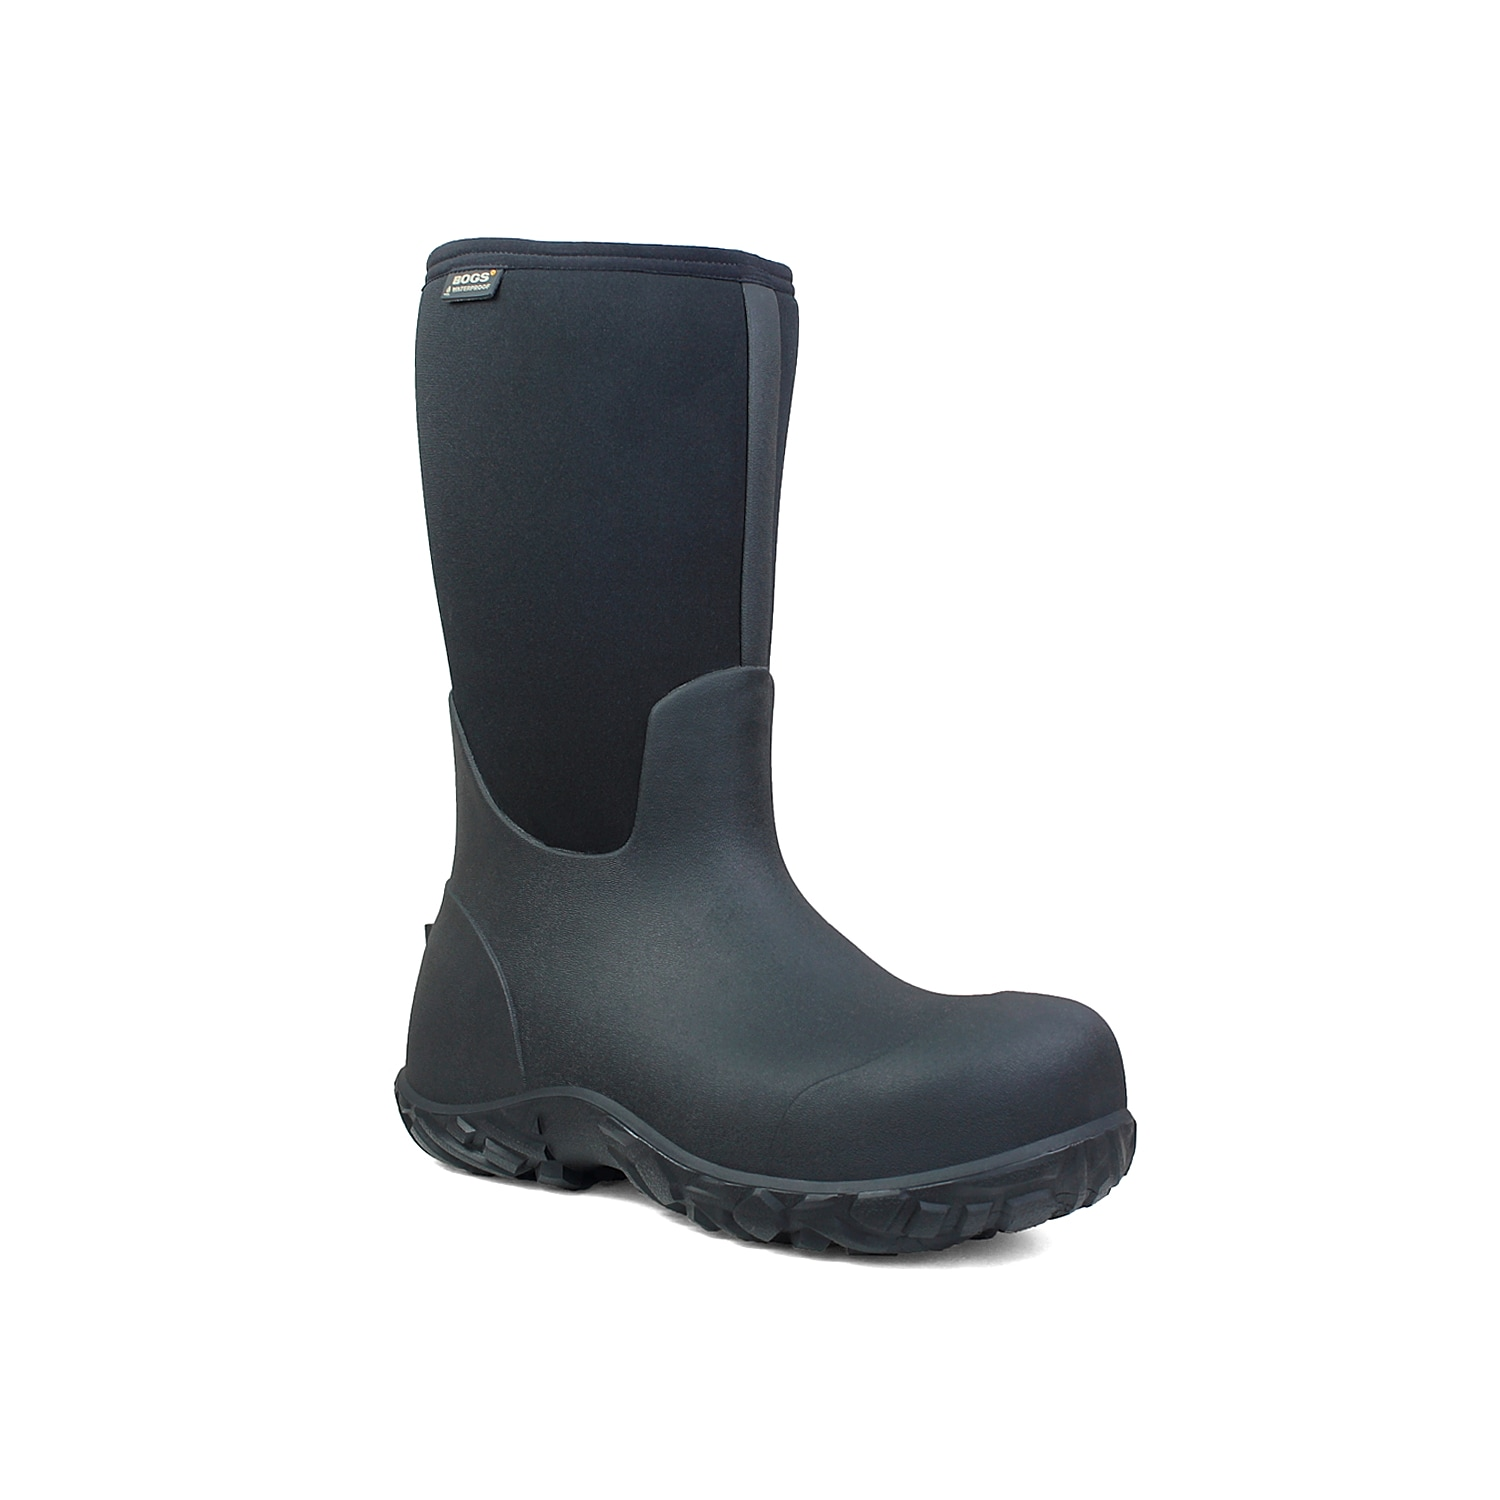 Prep for unexpected weather in these utility work boots made by Bogs. The Workman utility boot is waterproof and fully insulated with Neo-Tech subzero-rated lining to keep you going in cold, wet conditions. Lightweight Rebound cushioning seals this boot\\\'s guarantee on comfort.